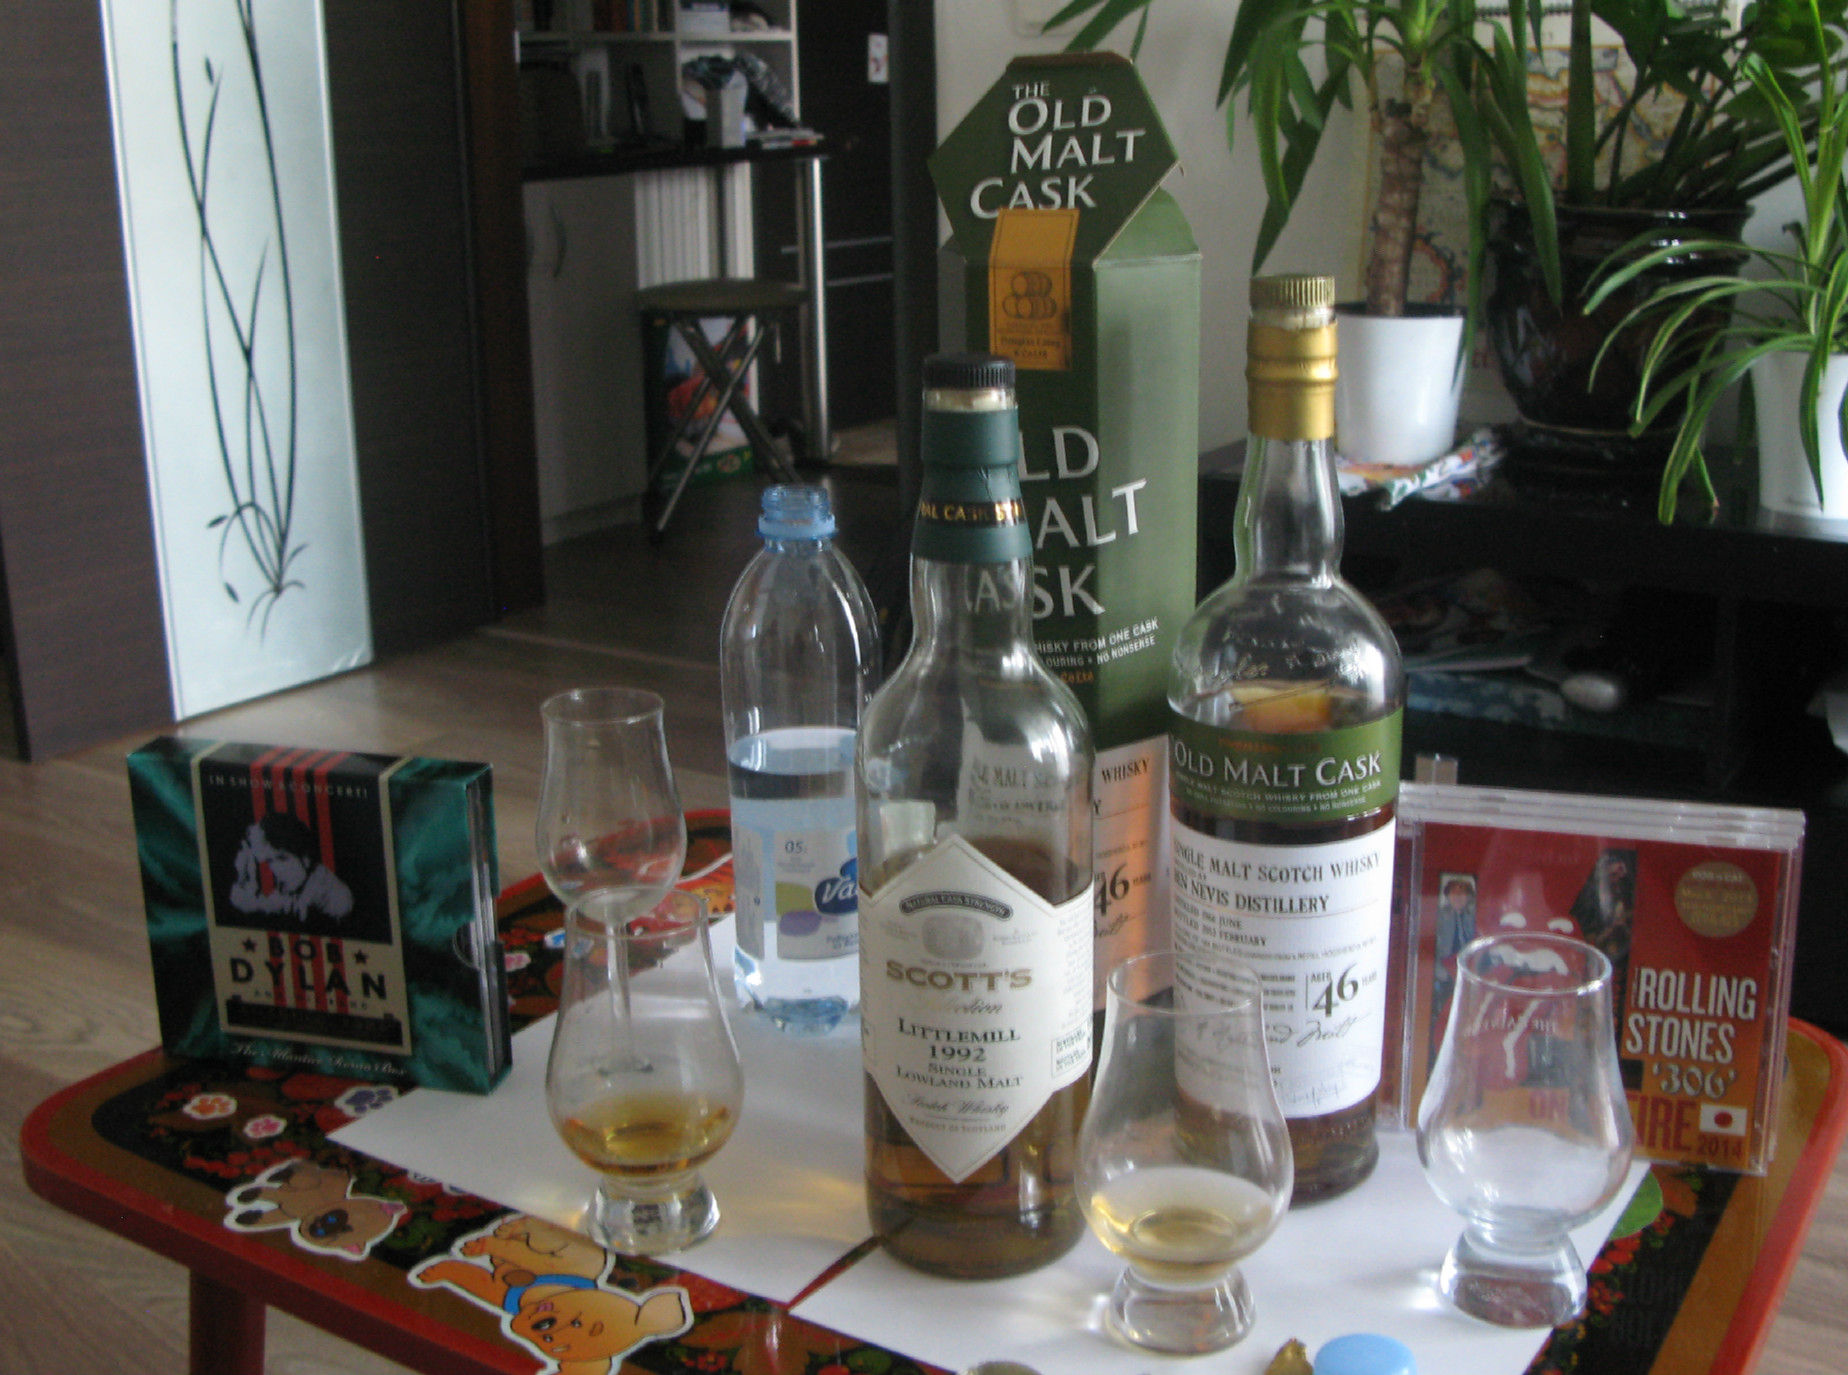 whisky-tasting-session-20140531